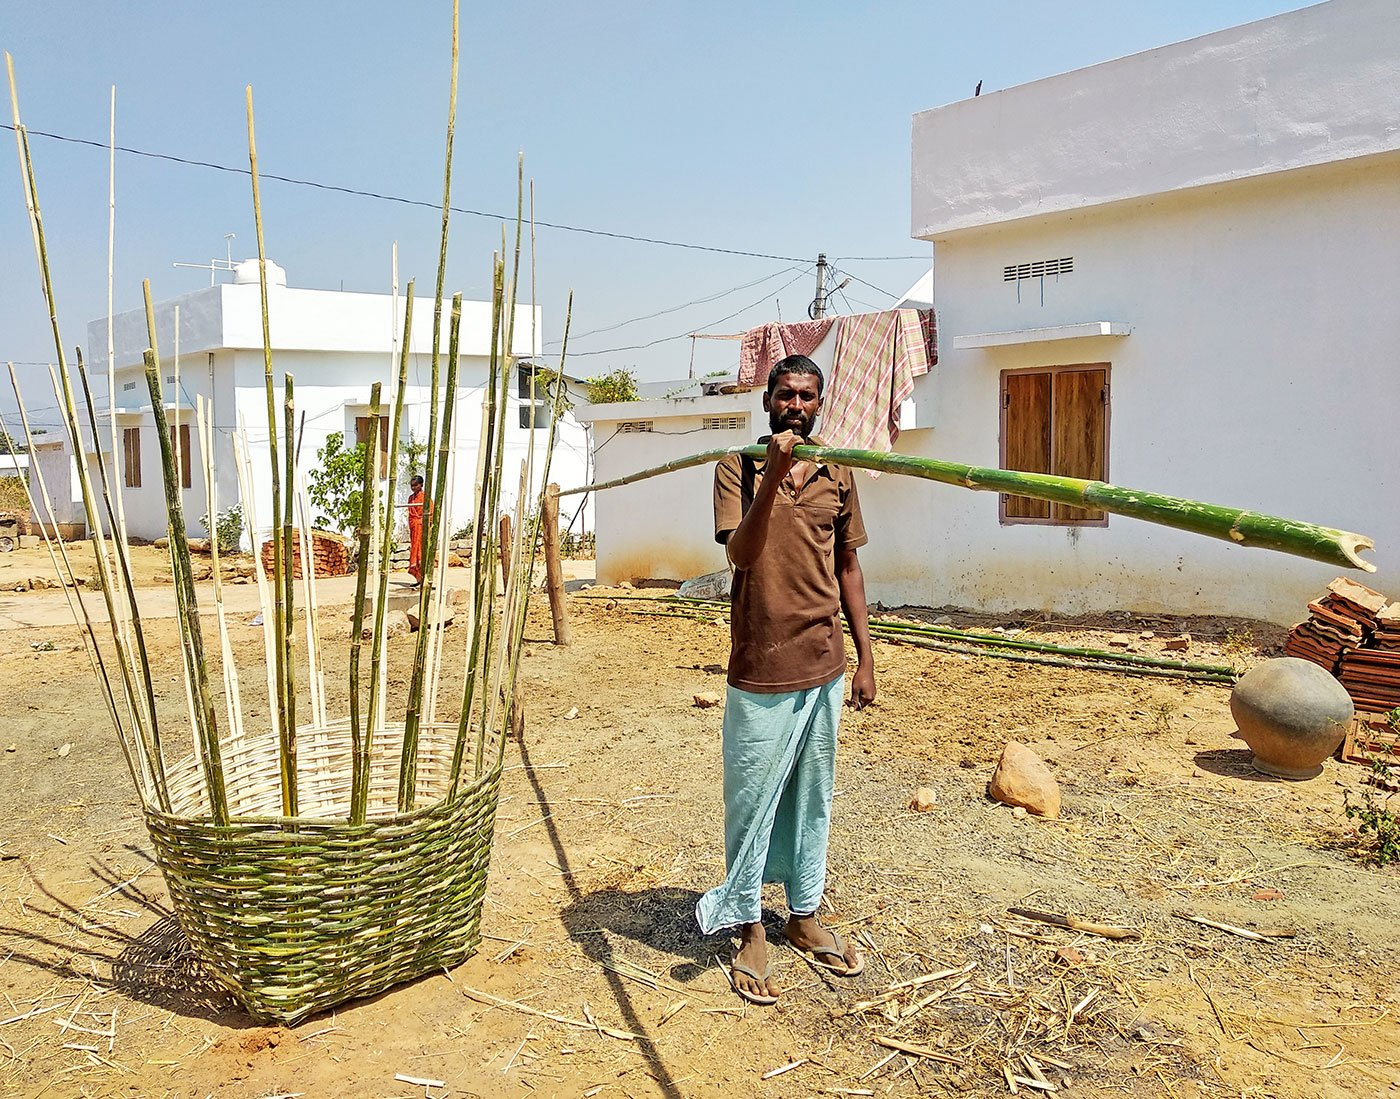 Praveen Kumar works as an agricultural labourer. He goes to the nearby forests and pick up bamboo sticks and make baskets. He takes three days to make one such basket – one day for getting the bamboo from the forests and two for making the basket. He needs three bamboo sticks, of the size he is holding, to make one basket